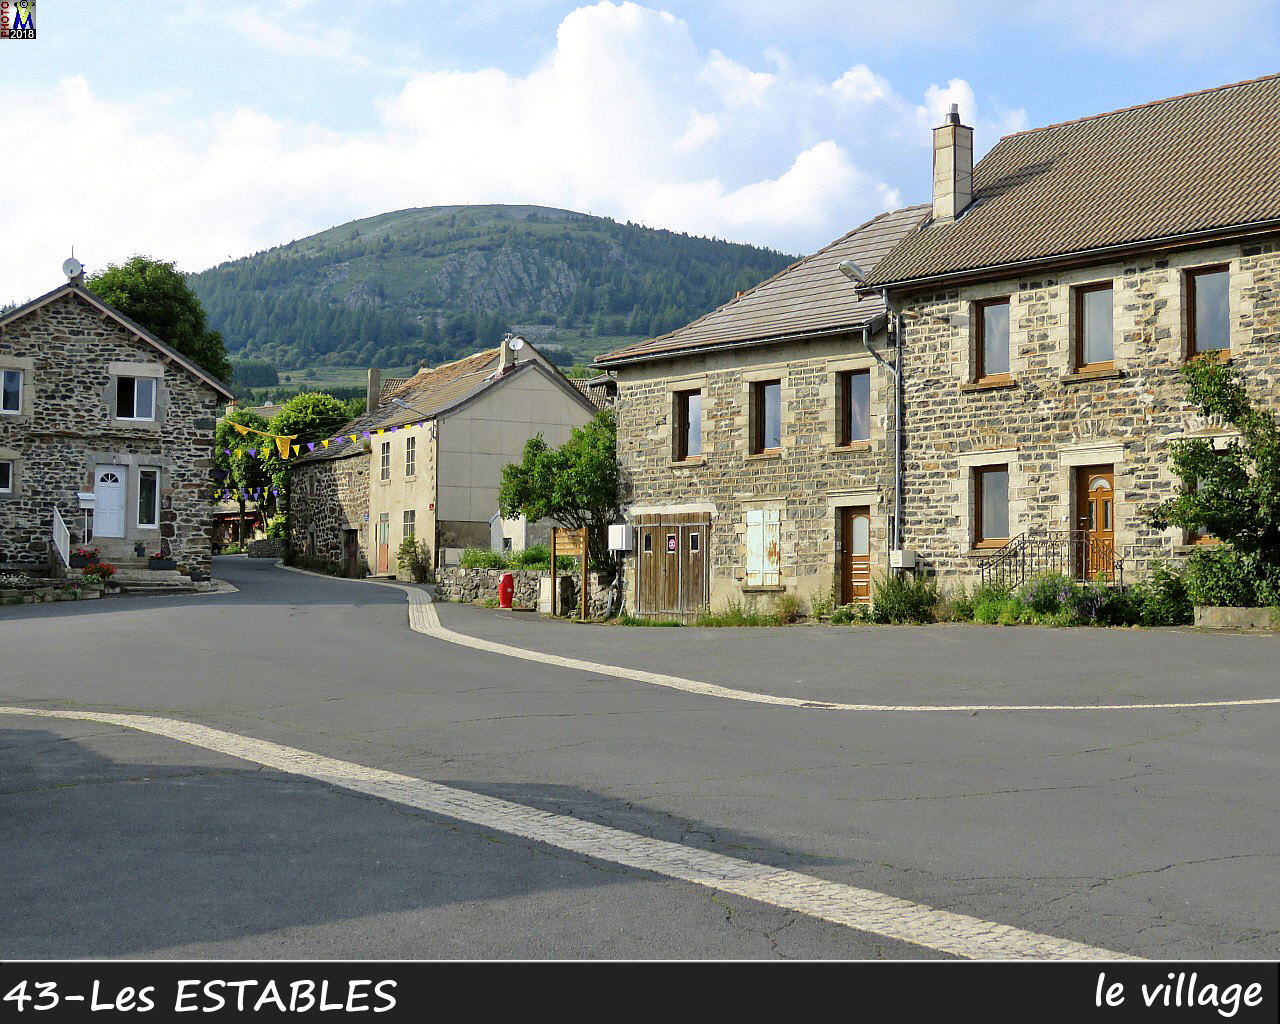 43LesESTABLES_village_114.jpg